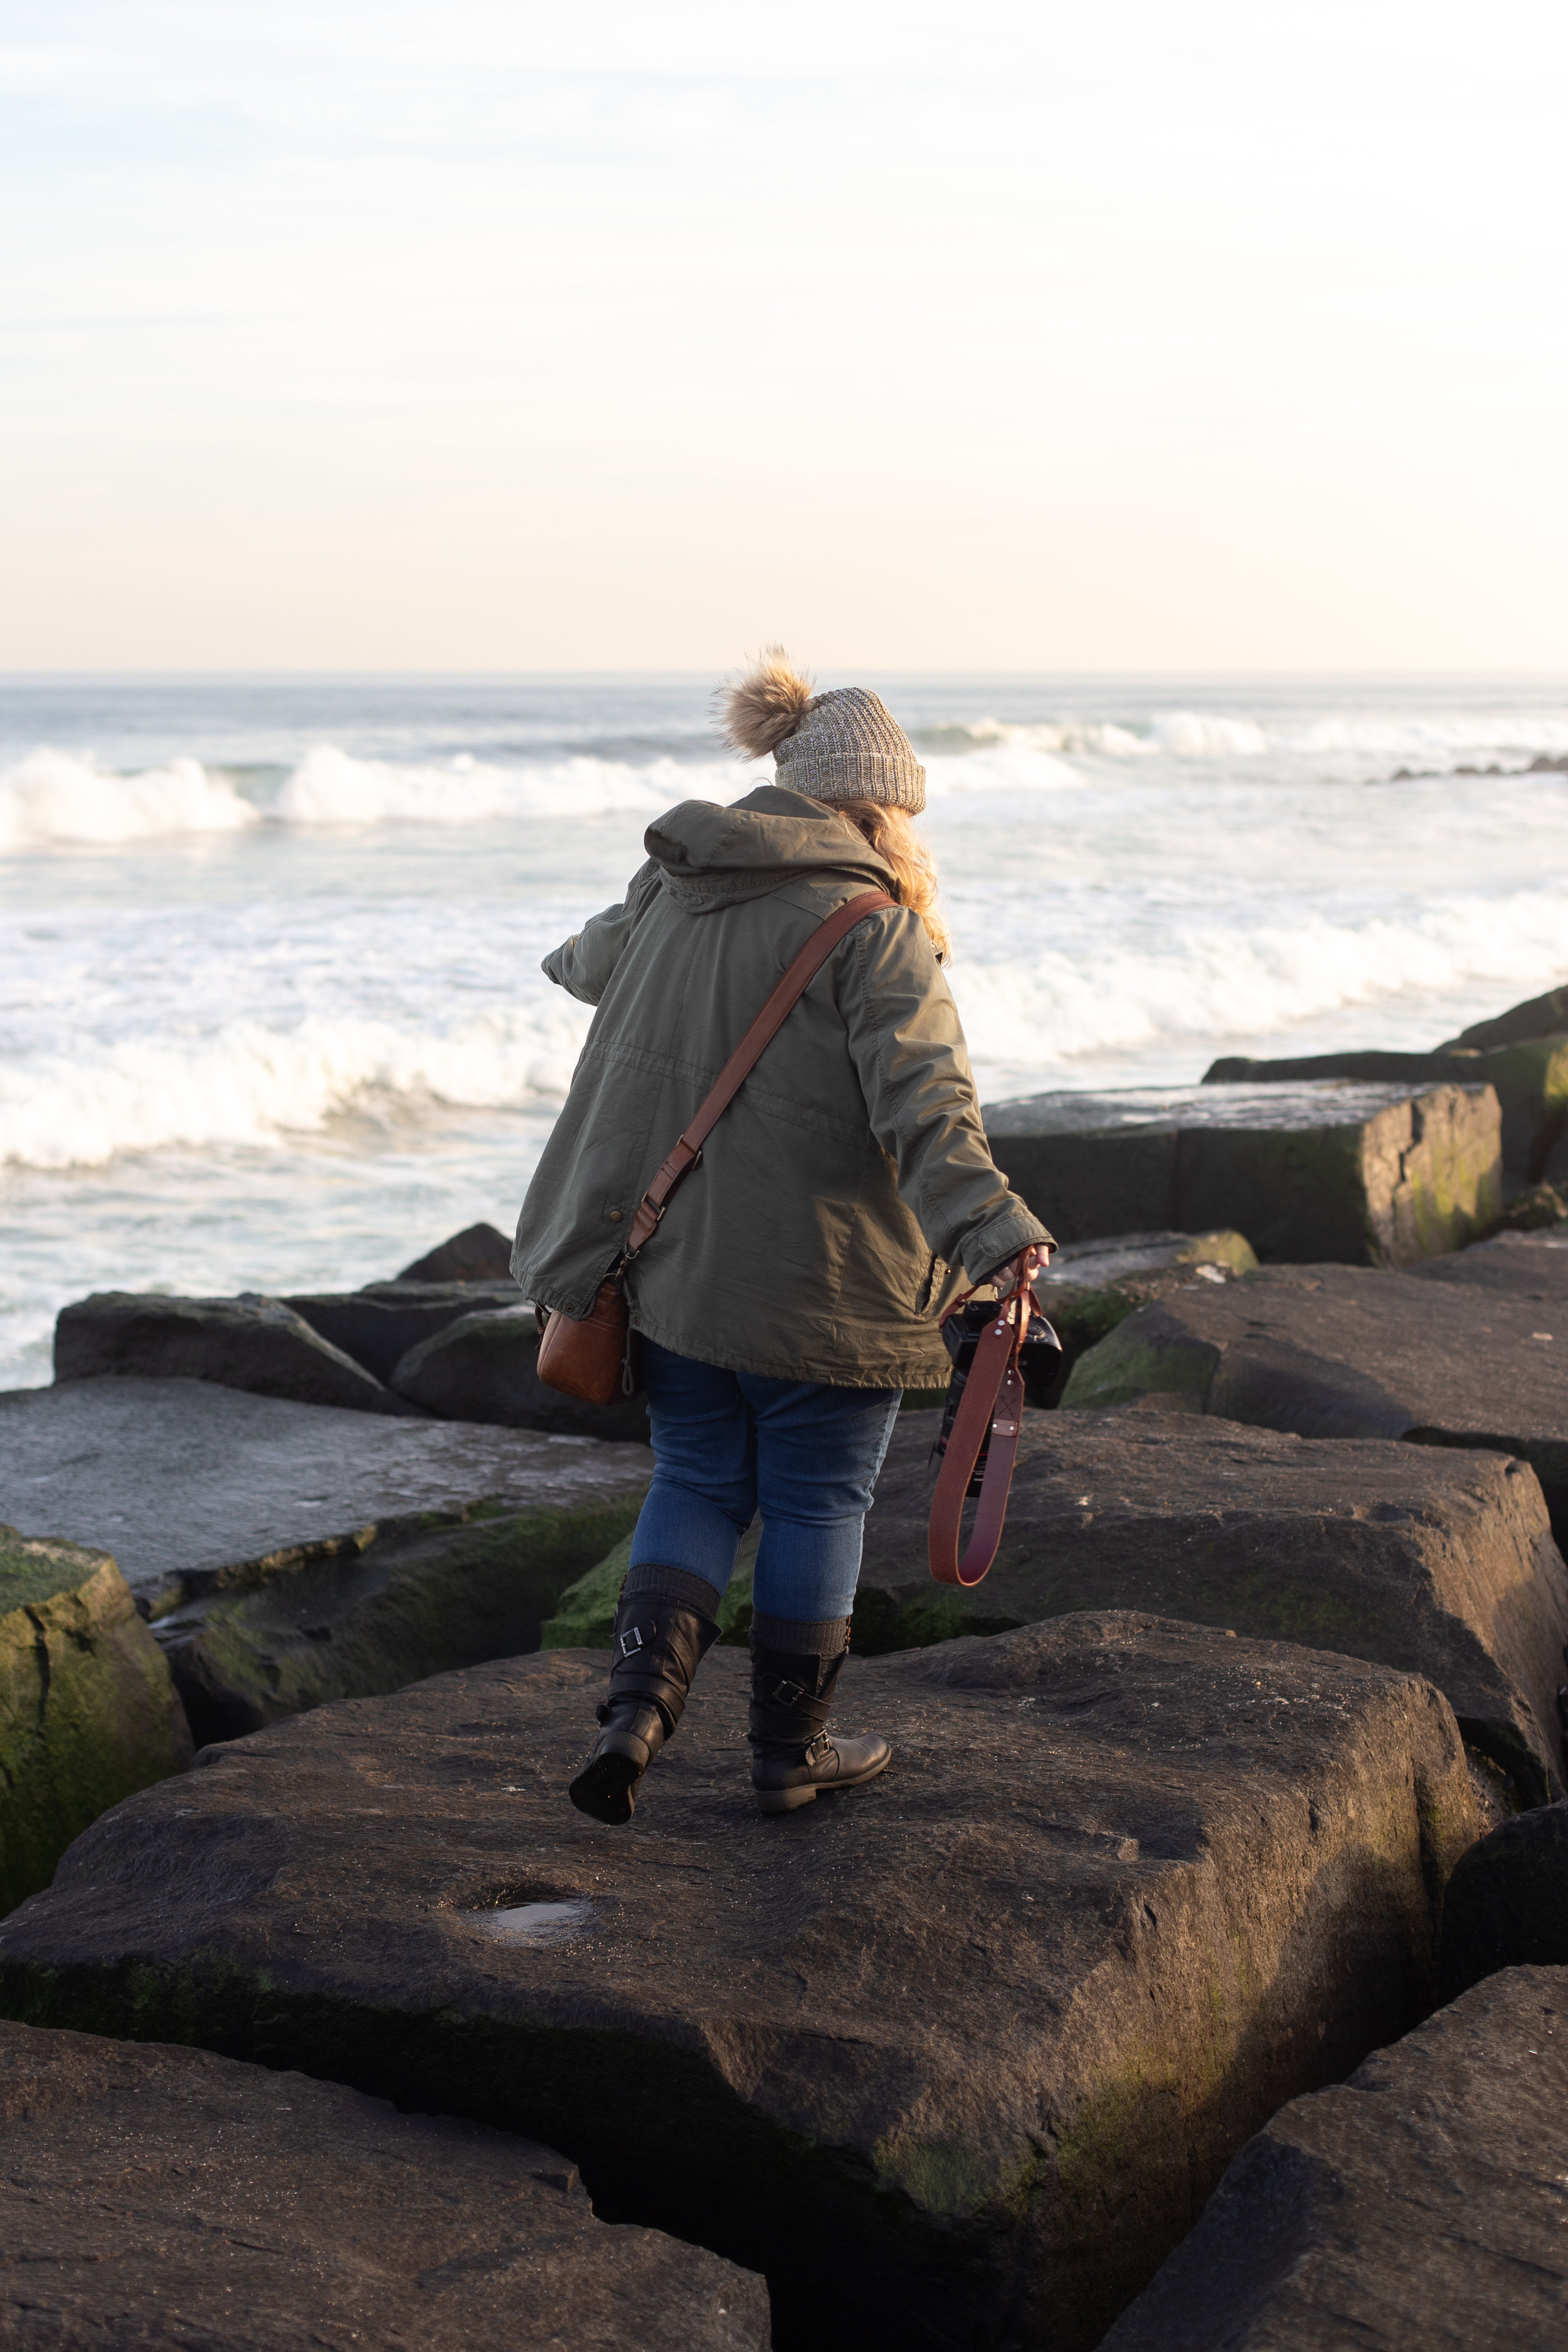 Woman standing on rocks in Asbury Park, New Jersey. Photo by Kayleigh Ann Archbold.